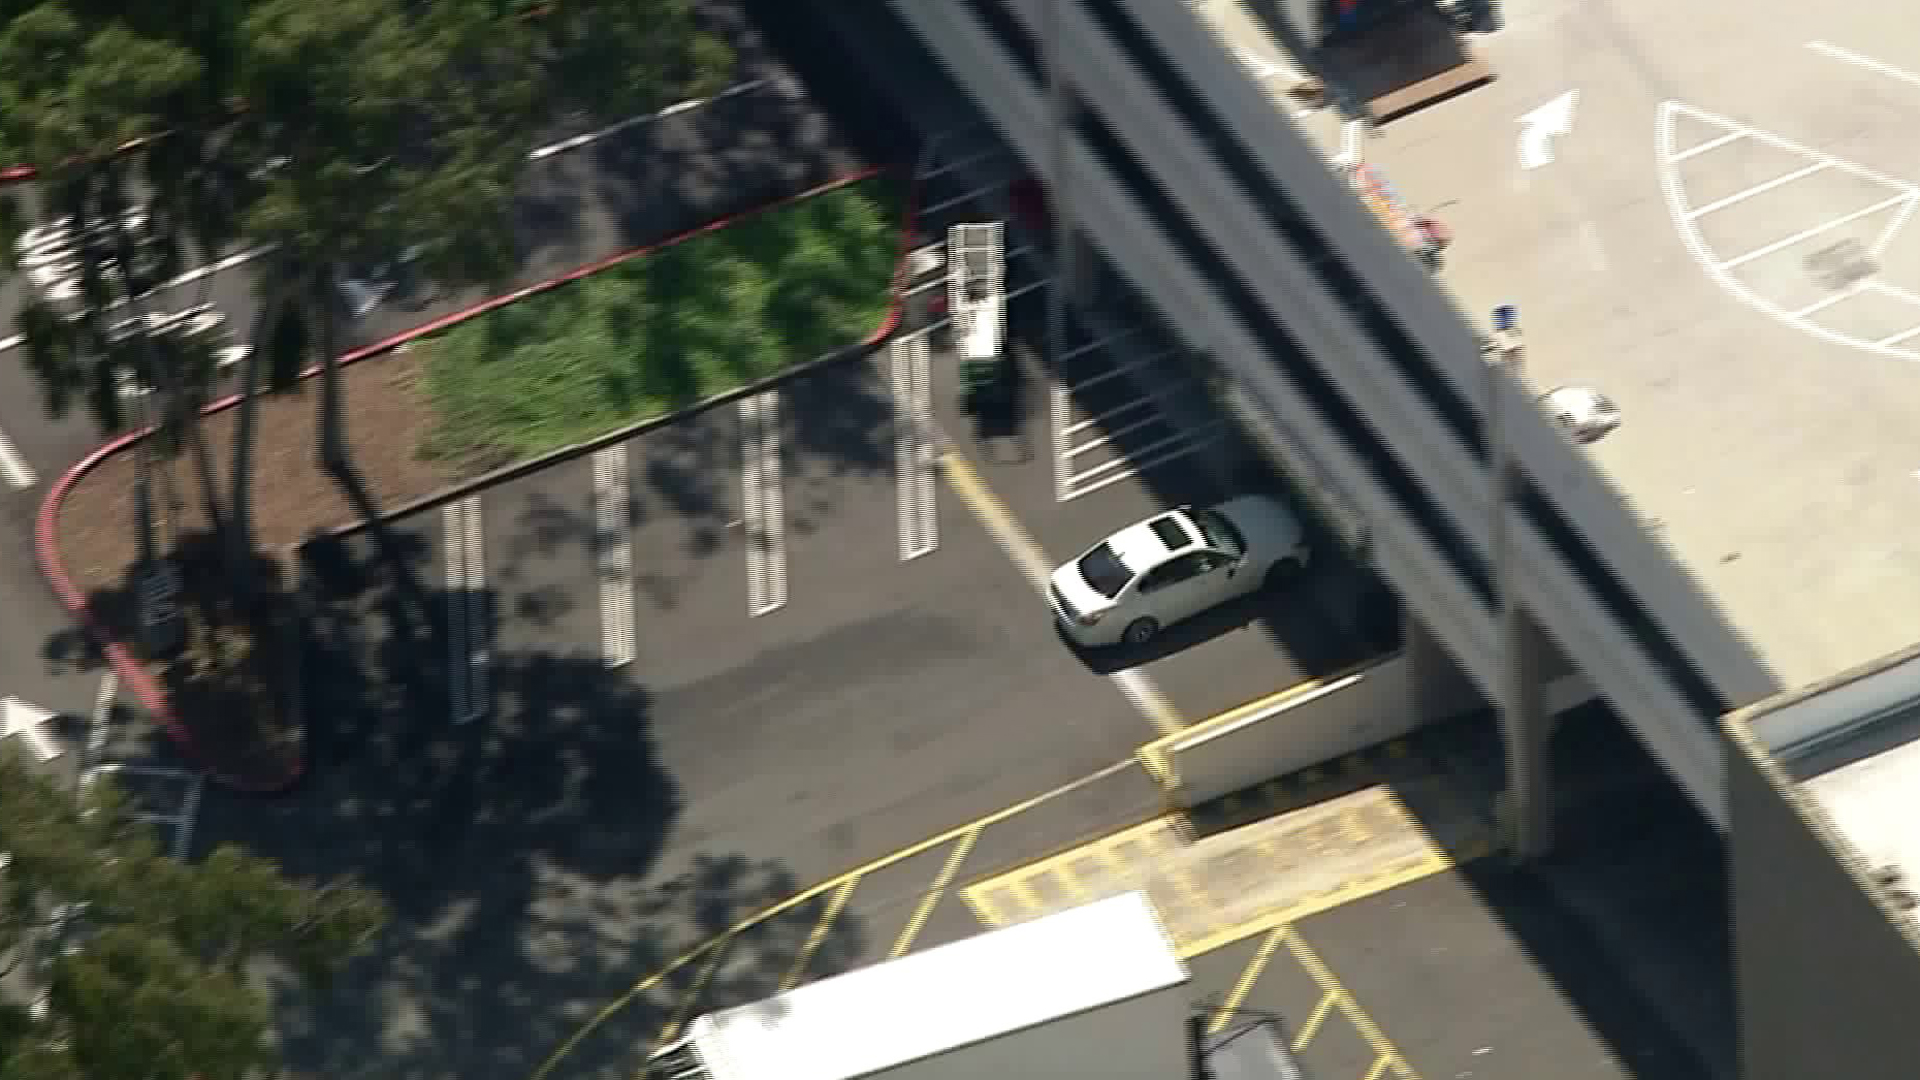 A driver who led police on a pursuit from the San Fernando Valley to West L.A. drives into the parking structure of the Westfield Culver City shopping mall on March 23, 2018. (Credit: KTLA)